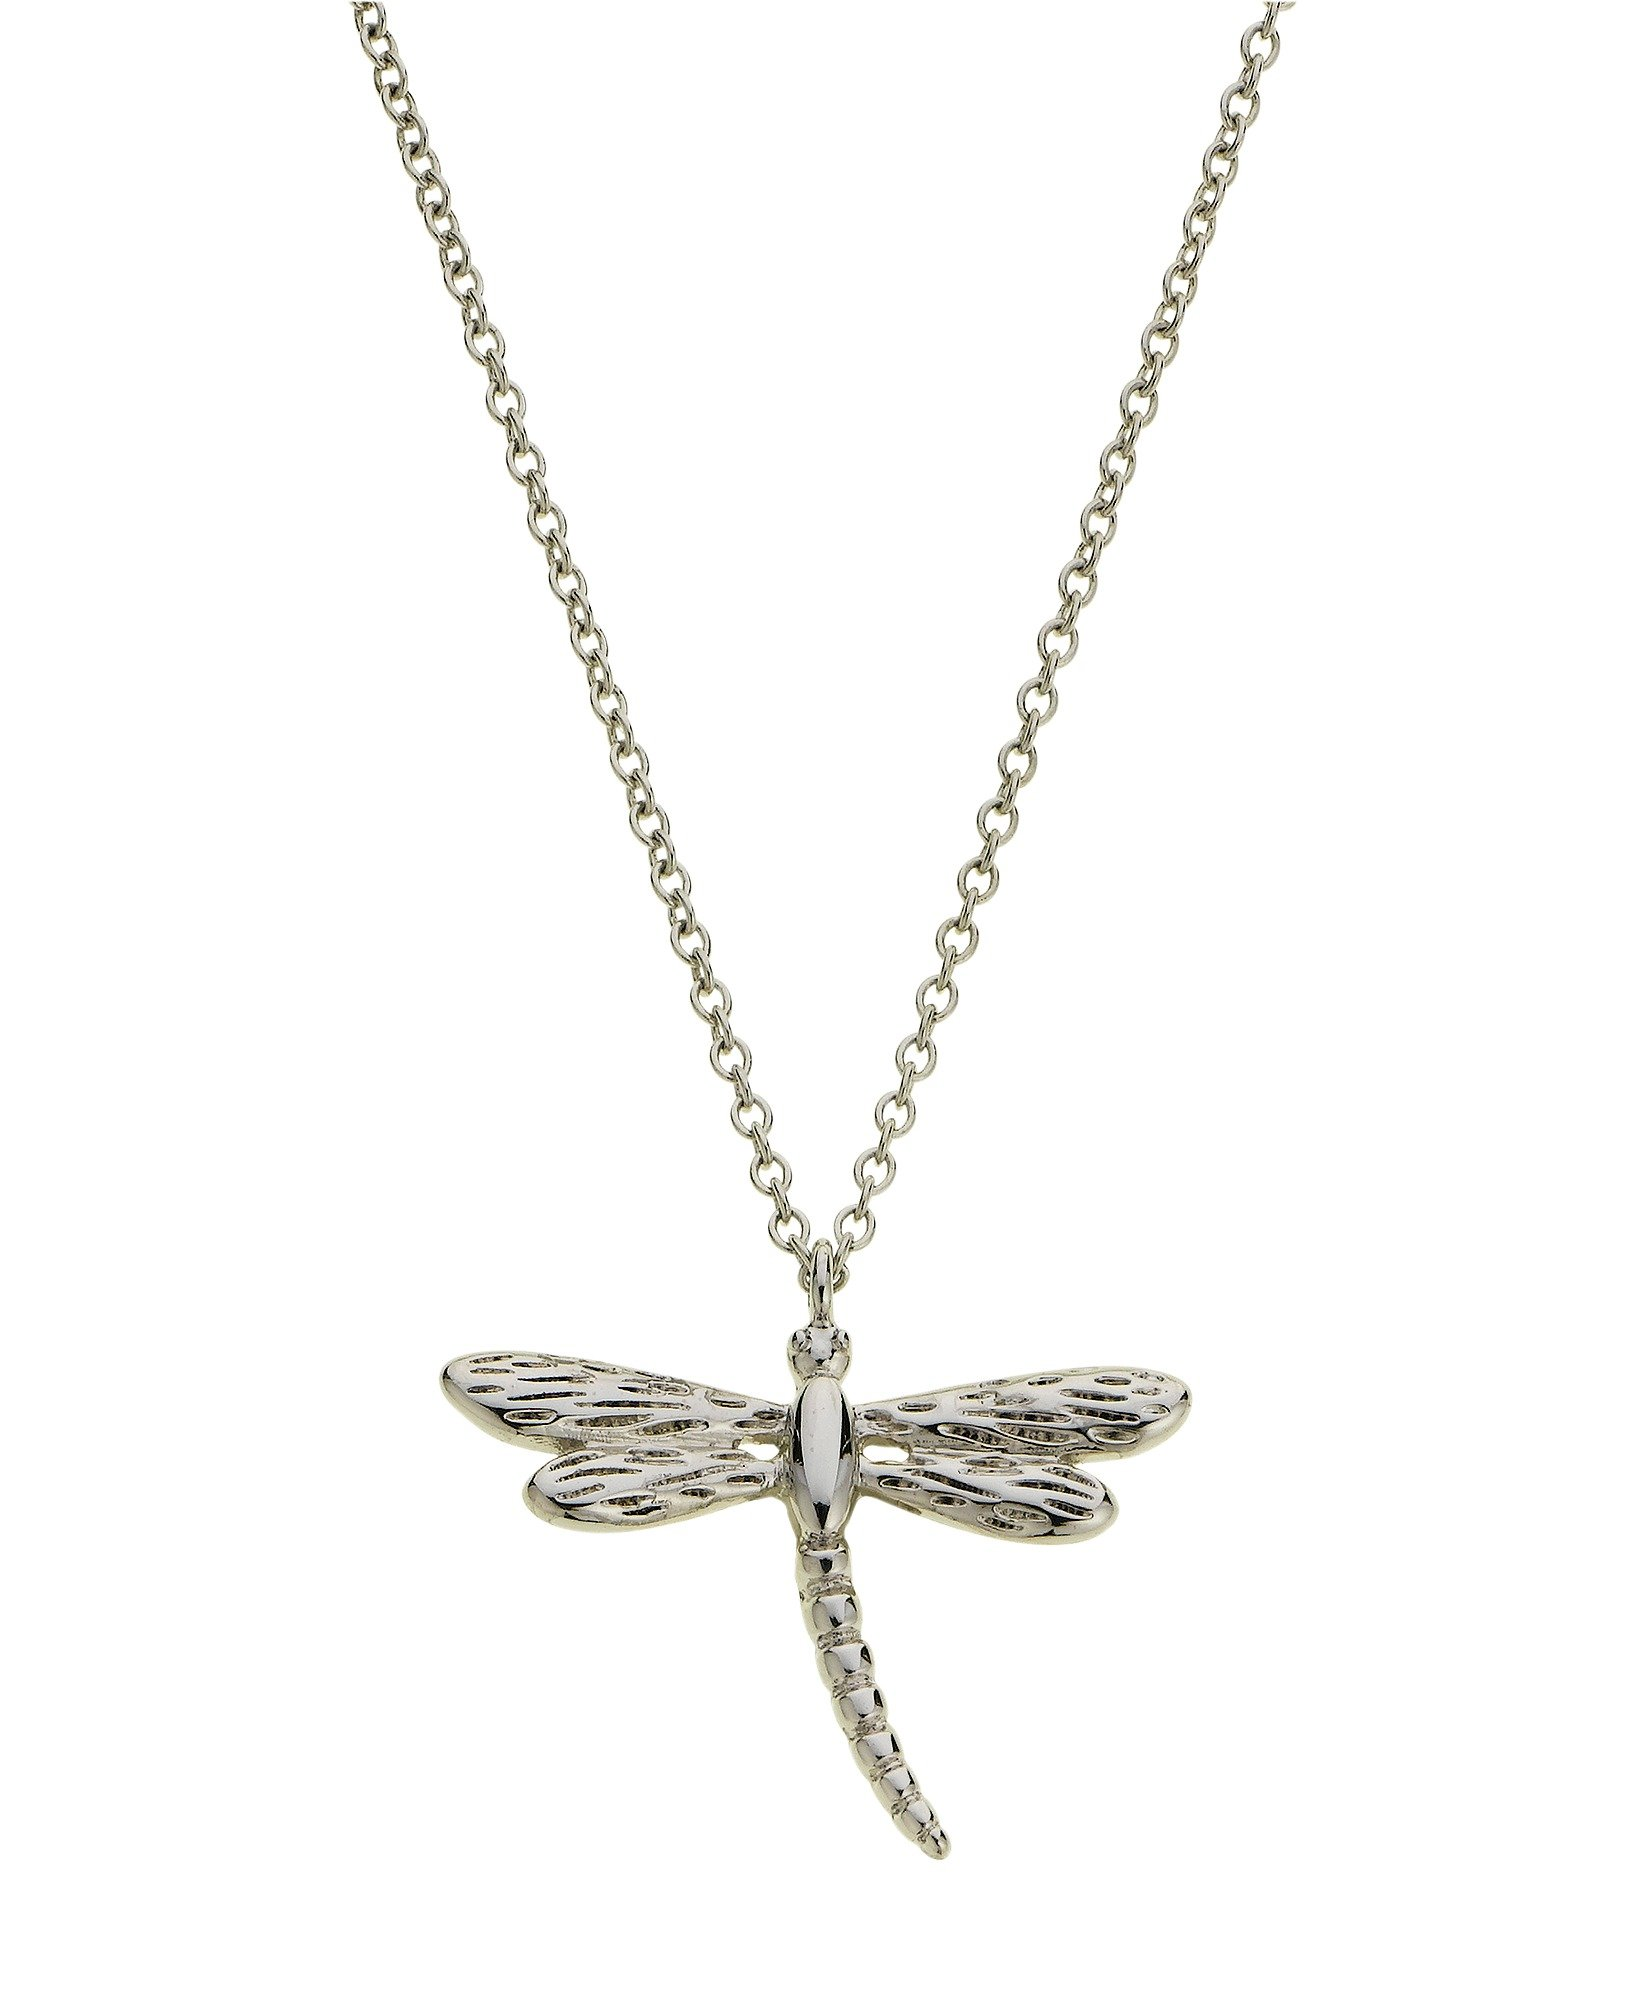 Image of Amelia Grace - Dragonfly Silver Colour Necklace.